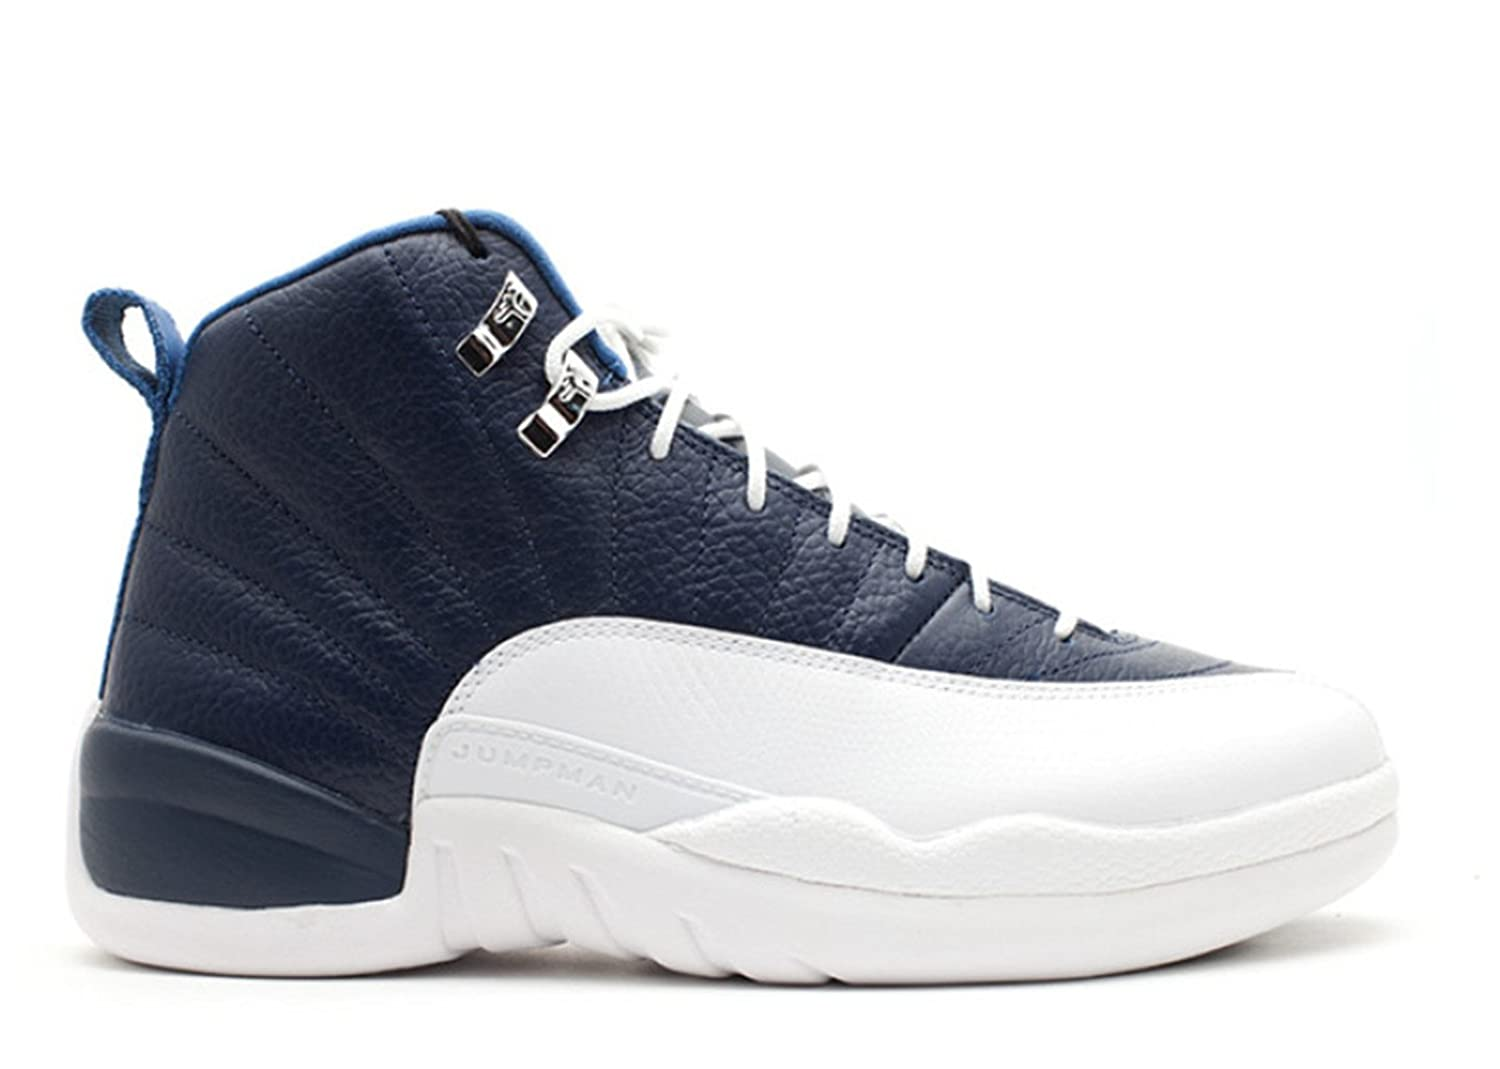 2017 Sports Sneakers Air Jordan 12 Retro Obsidian 2012 Release Universty Bluewhite French Blue Basketball Shoe